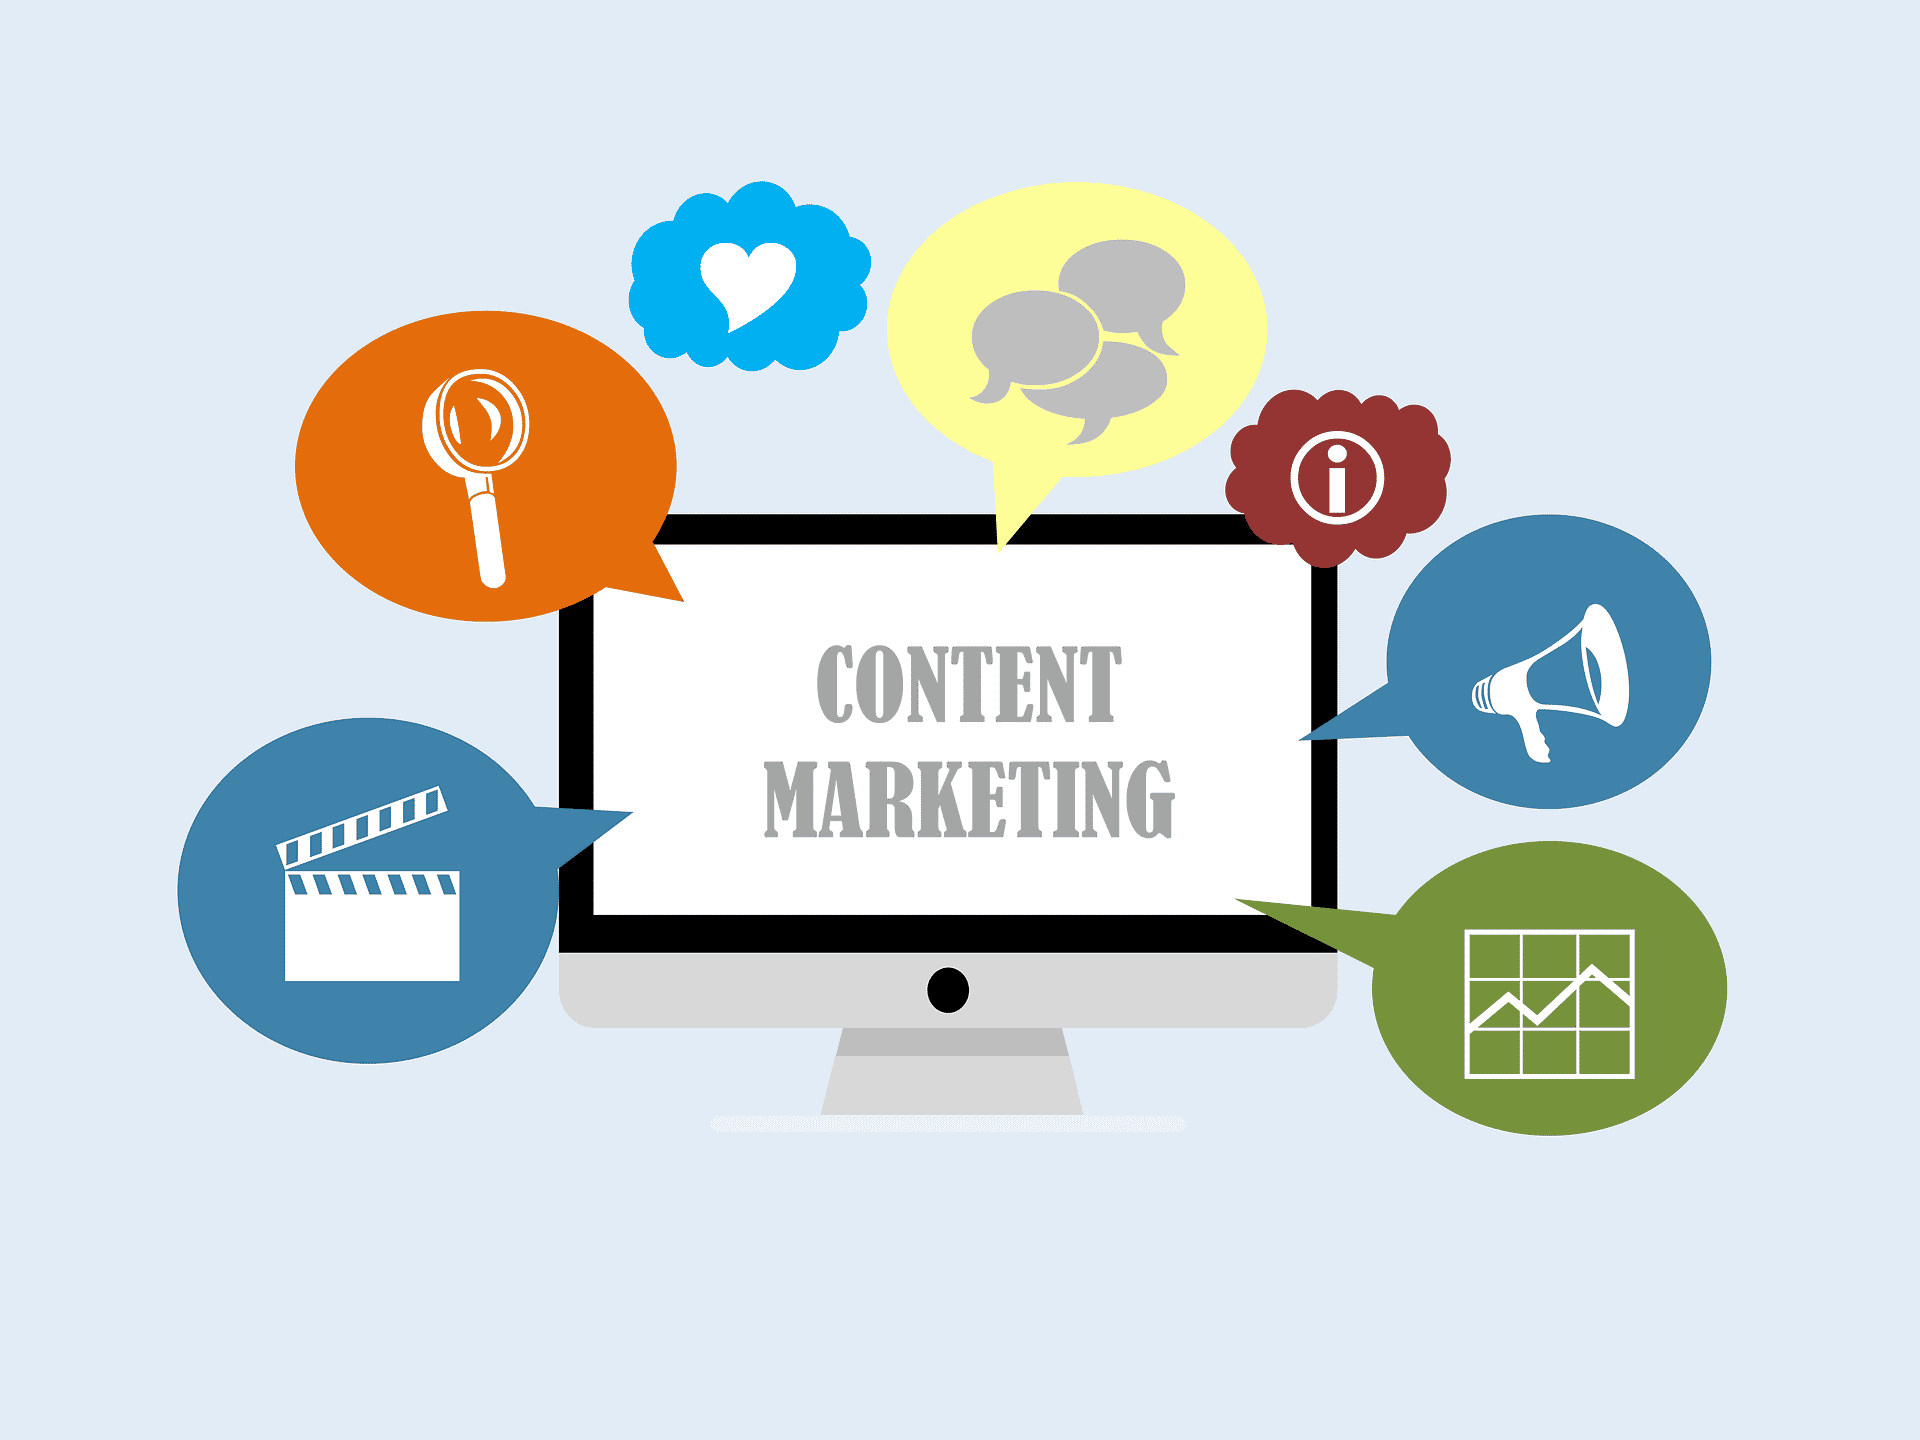 Content Marketing Is The Top Marketing Priority of 2014